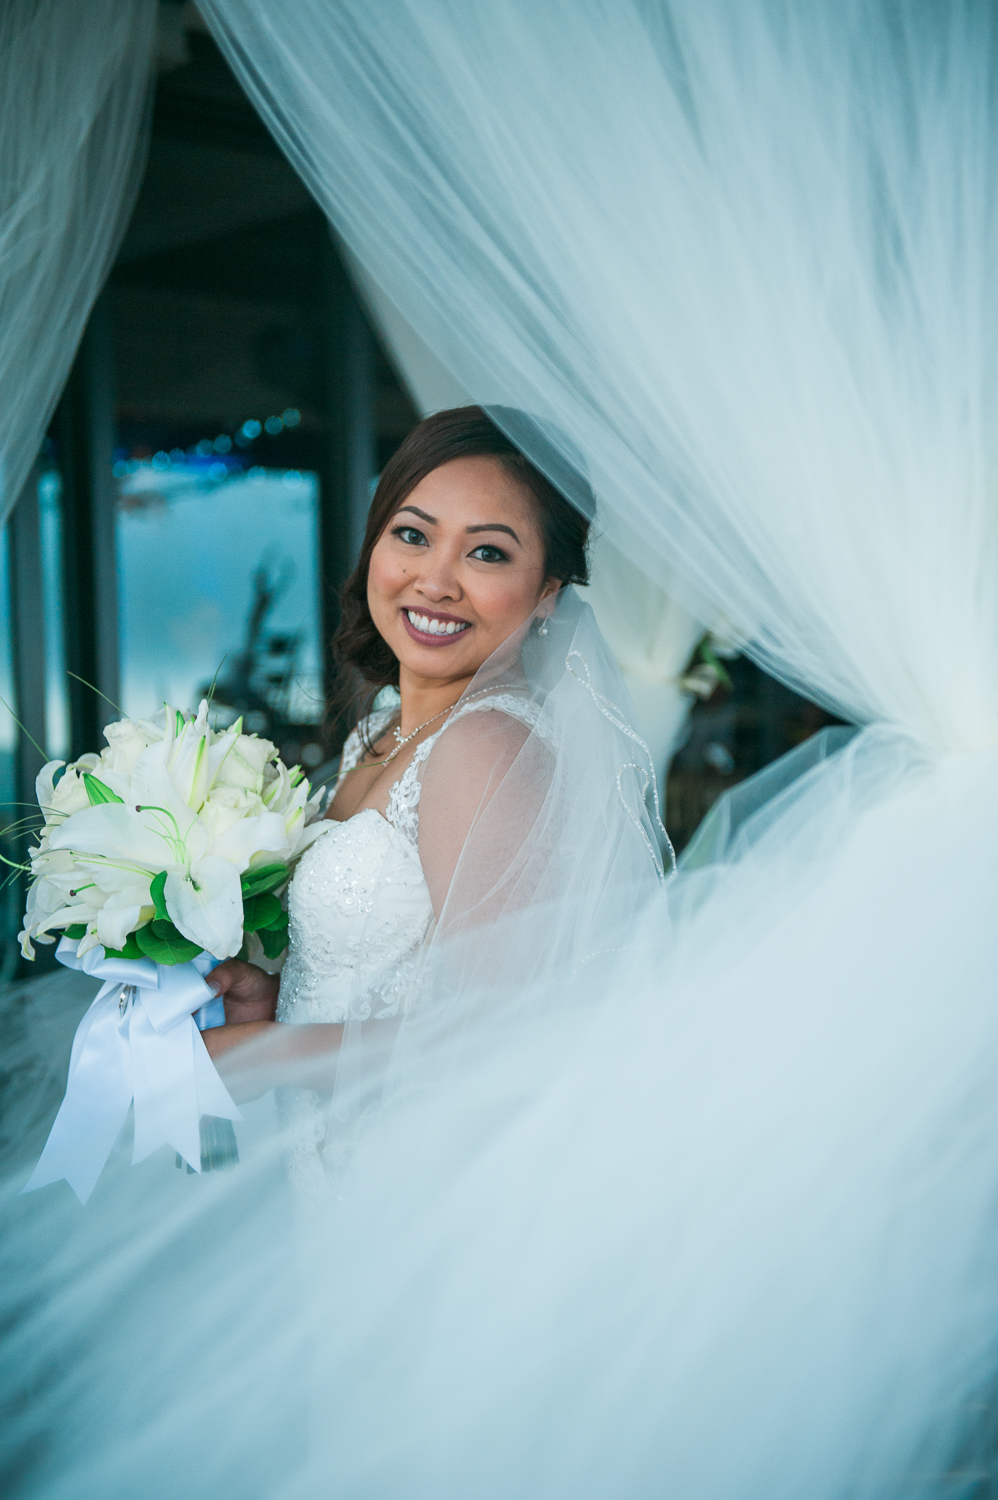 Bride smiling through tuile